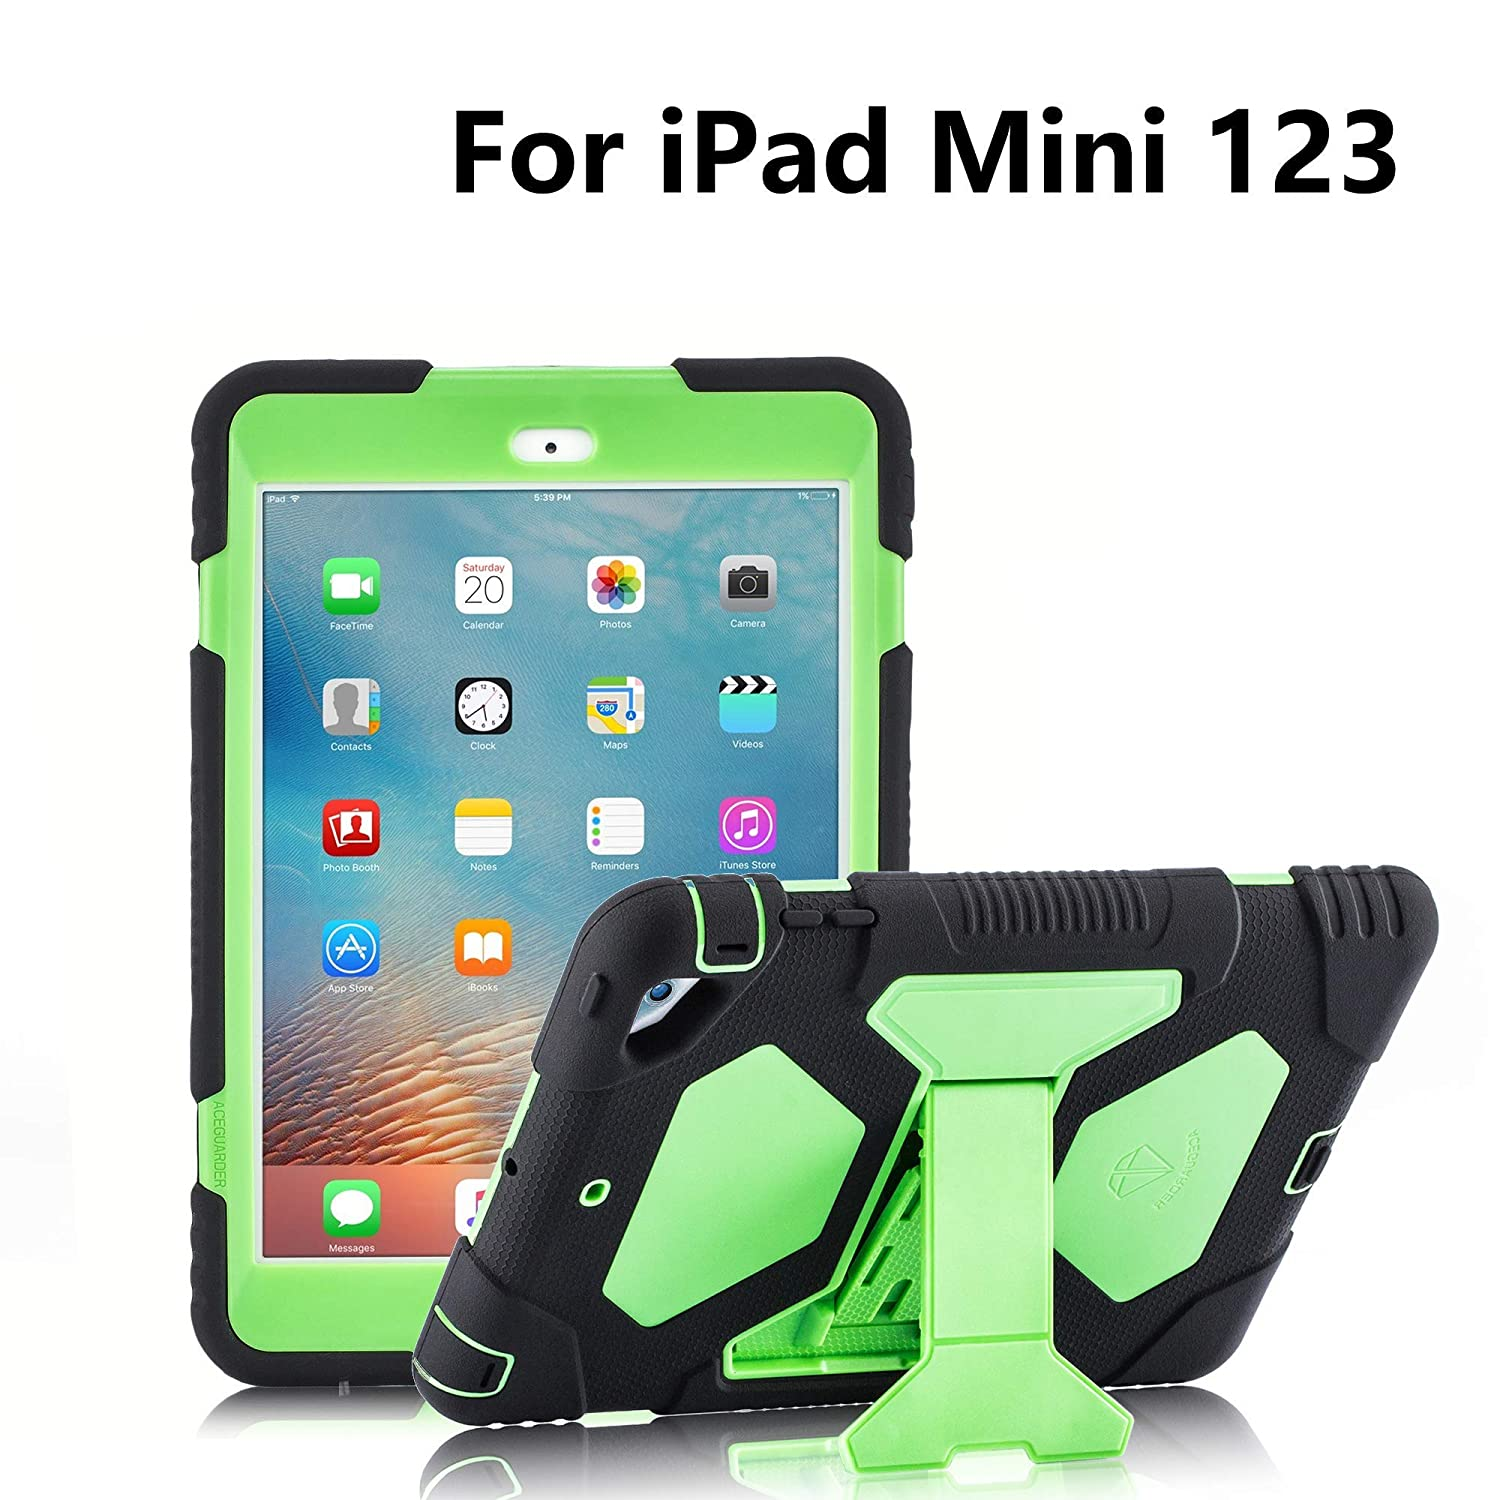 official photos 7236c ea5ae iPad Mini 3 Case, ACEGUARDER Full Body Protective Cover (Impact Resistant)  (Shockproof) (Scratchproof) with Built-in Screen Protector & Adjustable ...